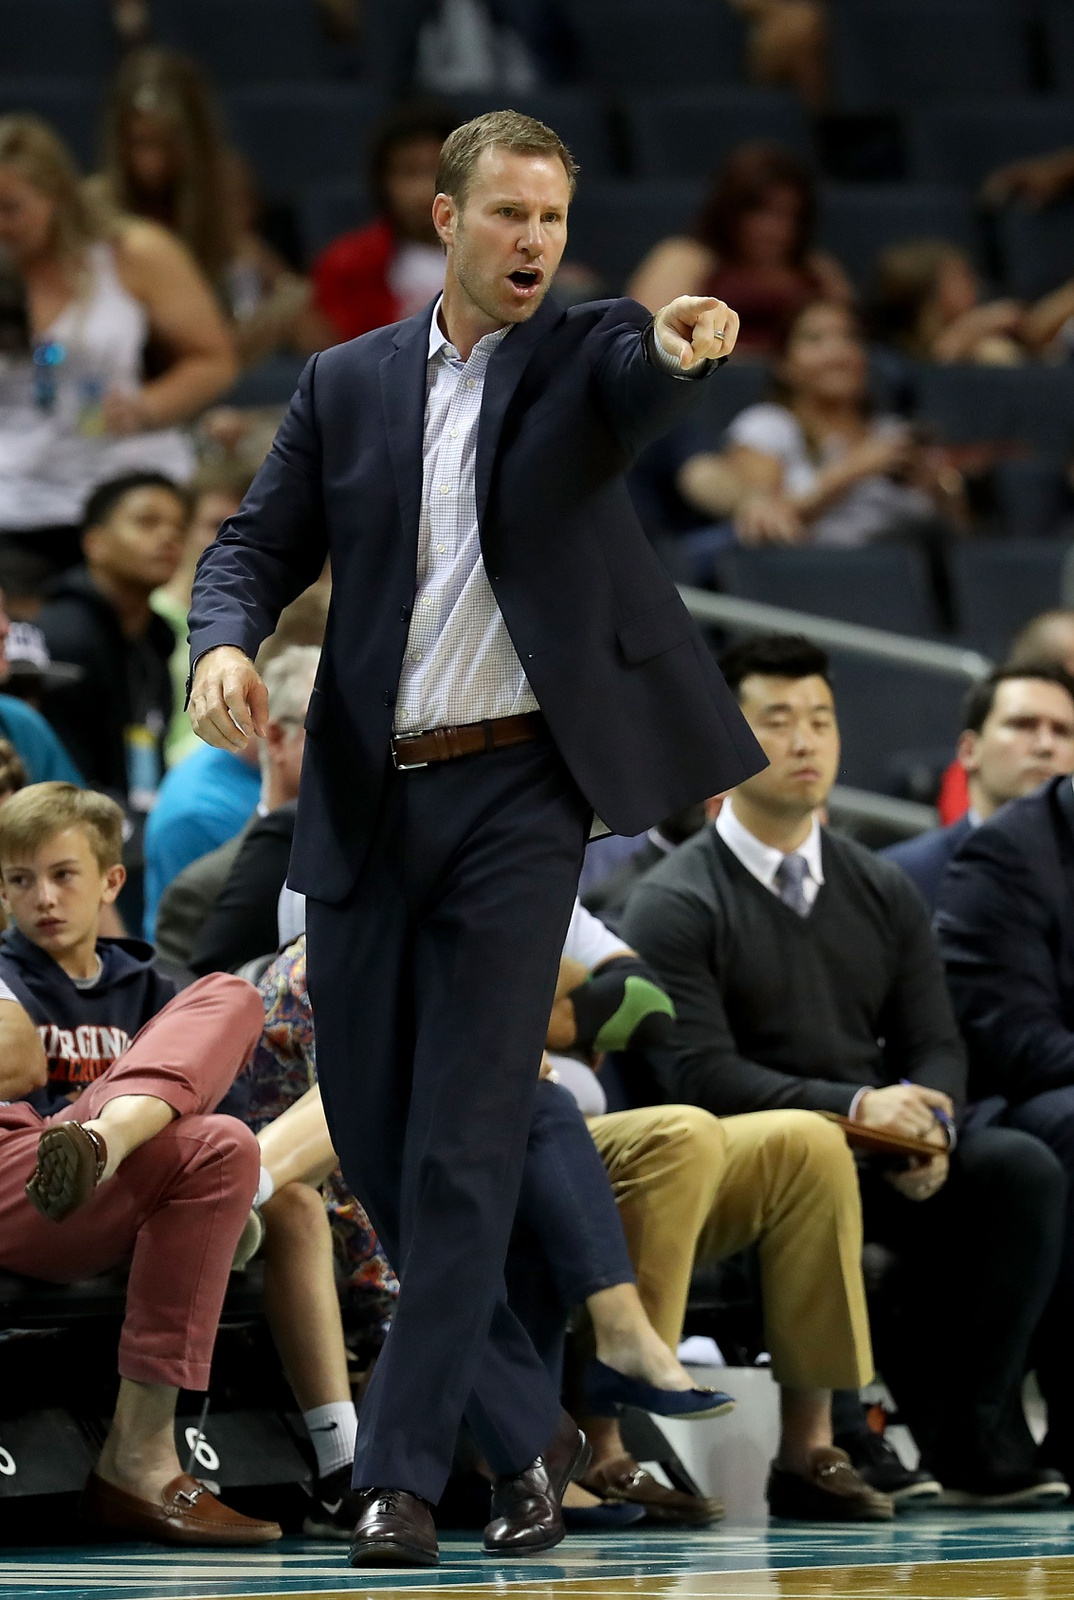 Head coach Fred Hoiberg of the Chicago Bulls watches on against the Charlotte Hornets during their game at Spectrum Center on October 8, 2018 in Charlotte, North Carolina.